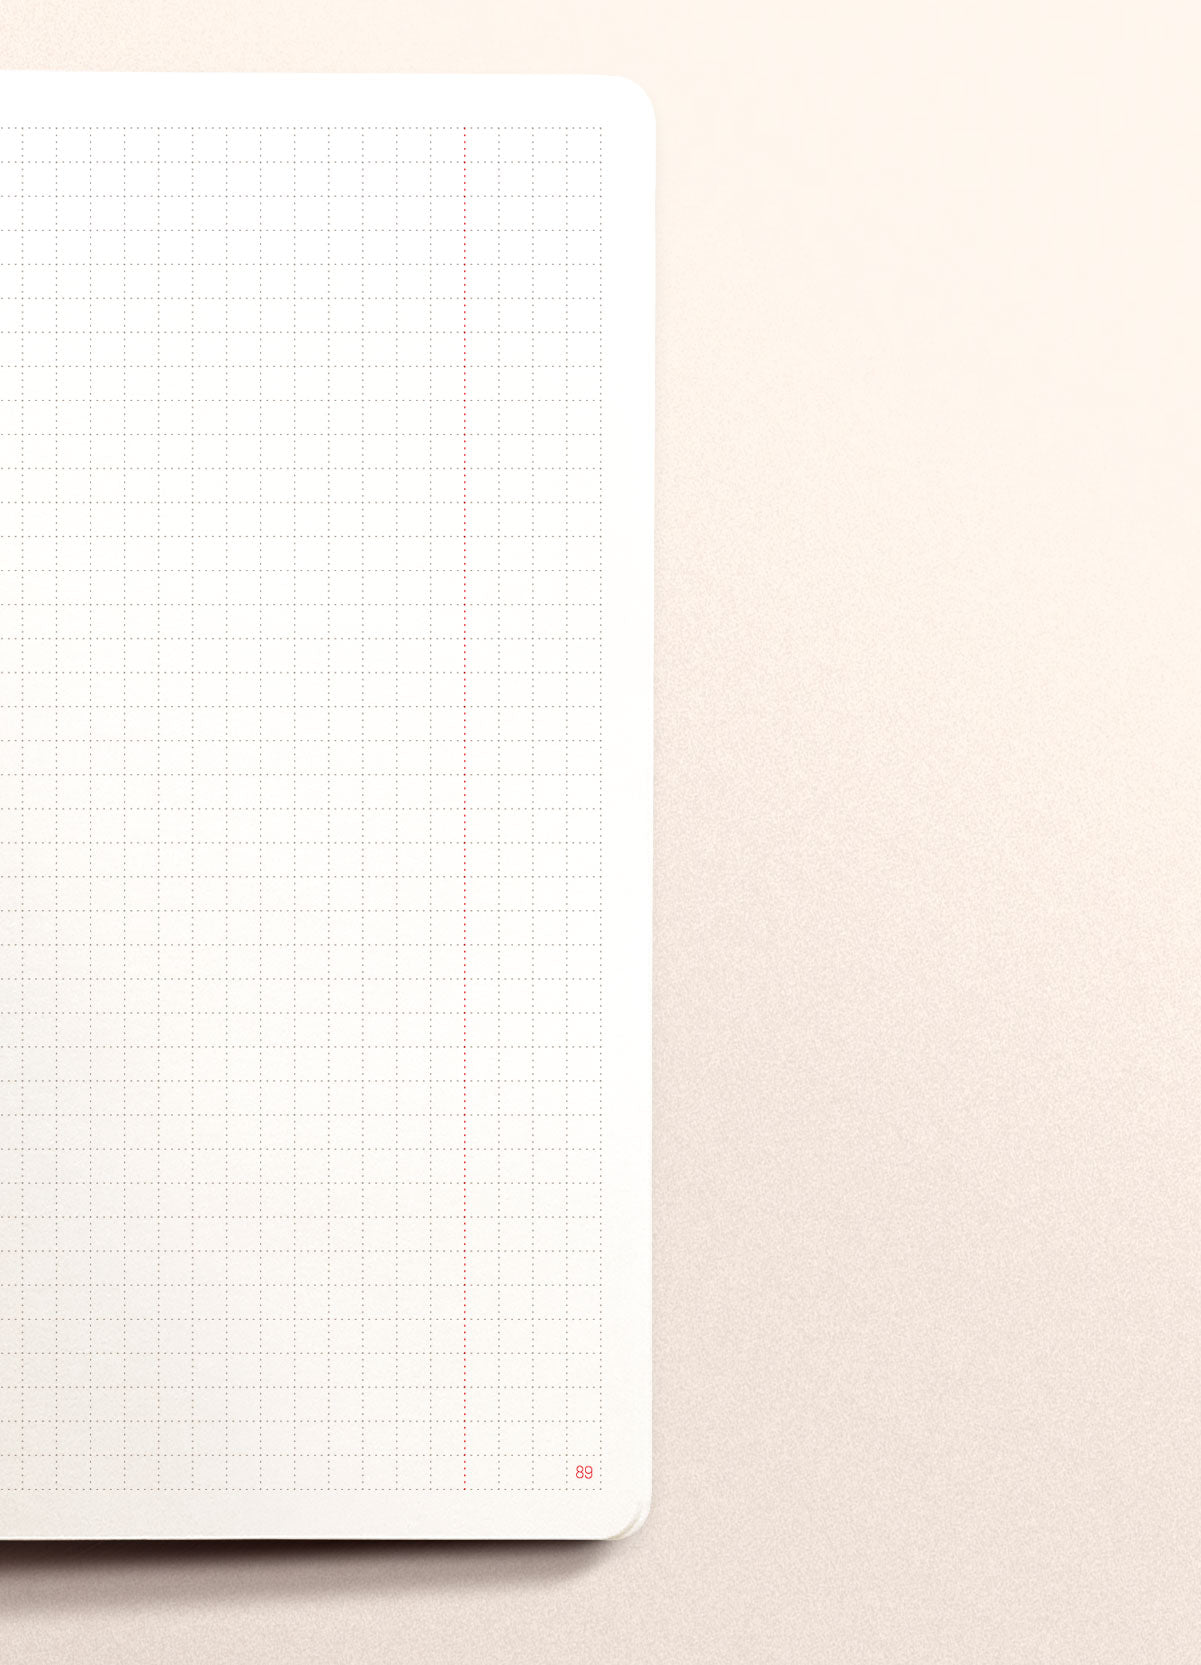 N.306 (GRID) Notebook. Slim / Traveler's notebook size [R]